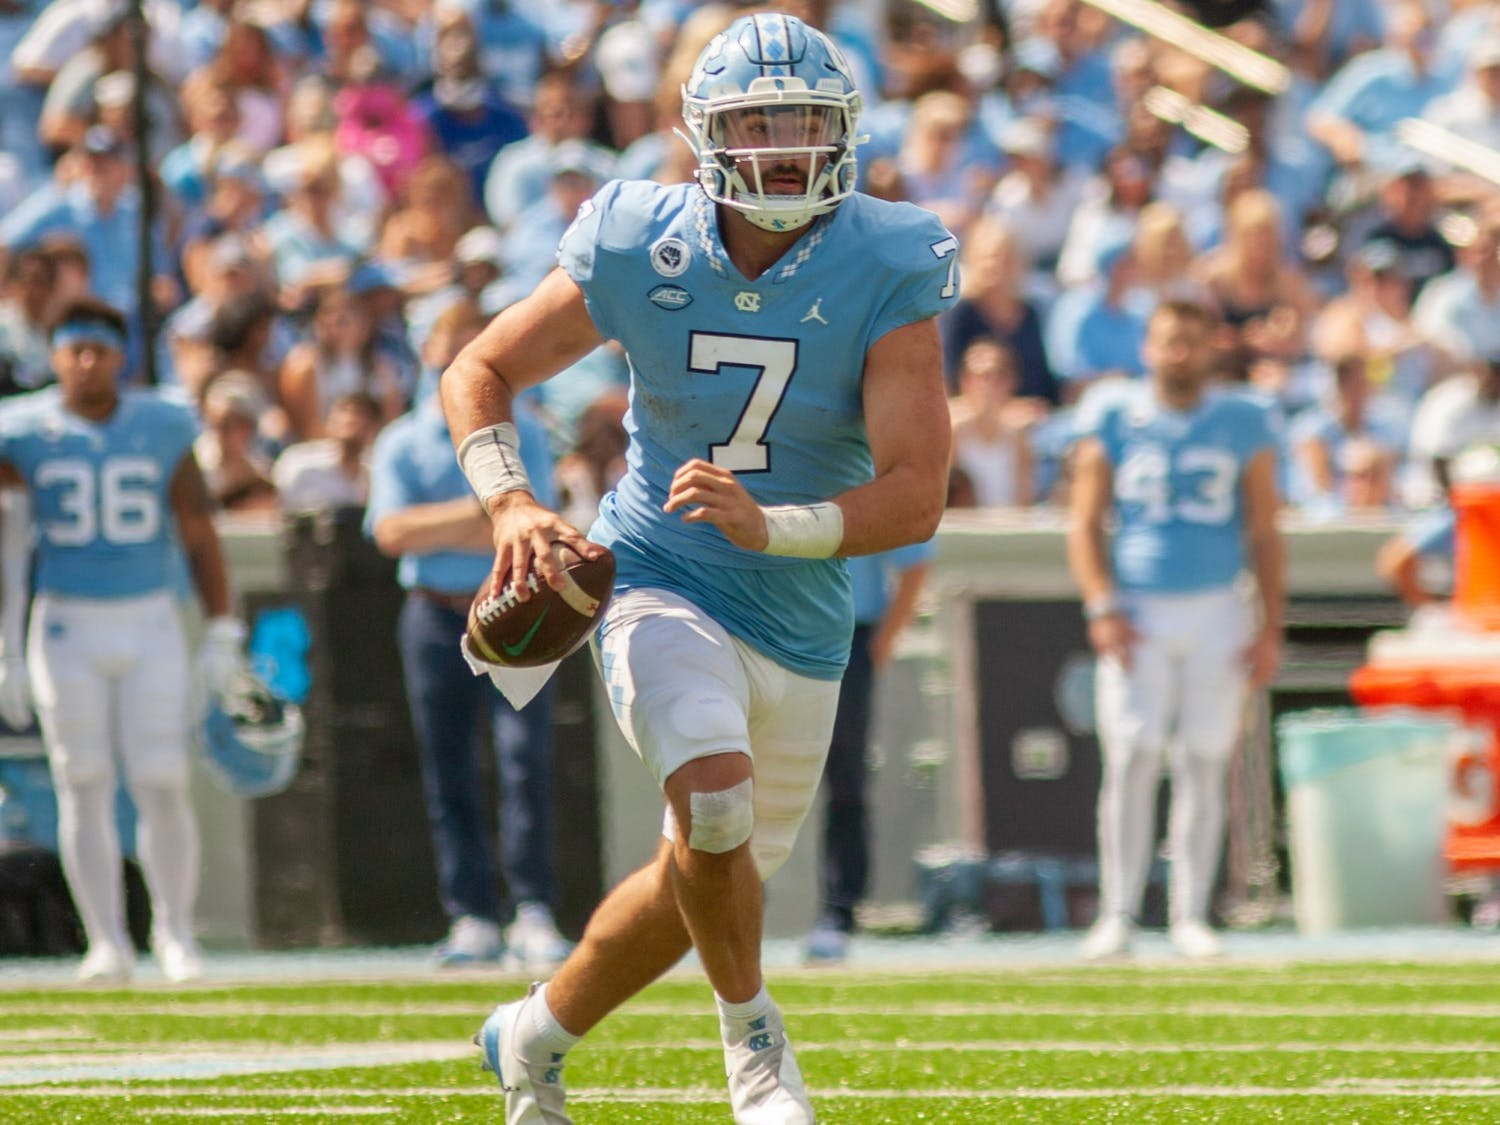 Junior quarterback Sam Howell (7) prepares to throw the ball at the game against Duke on Oct. 2 at Kenan Stadium. UNC won 38-7.